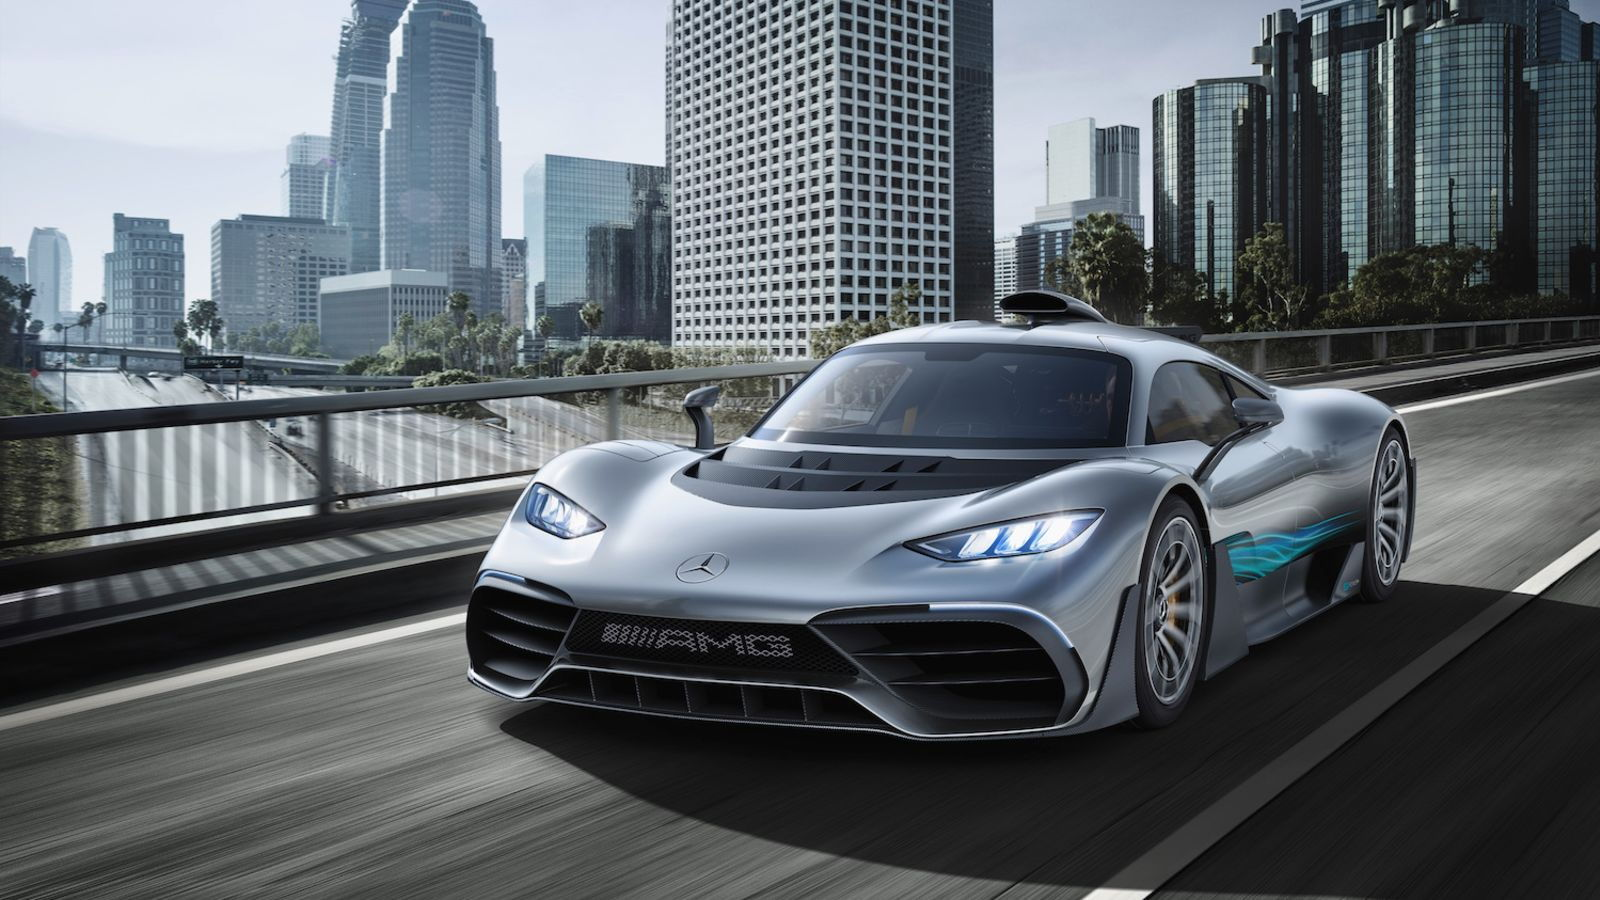 Will People Drive the Project One Supercar?